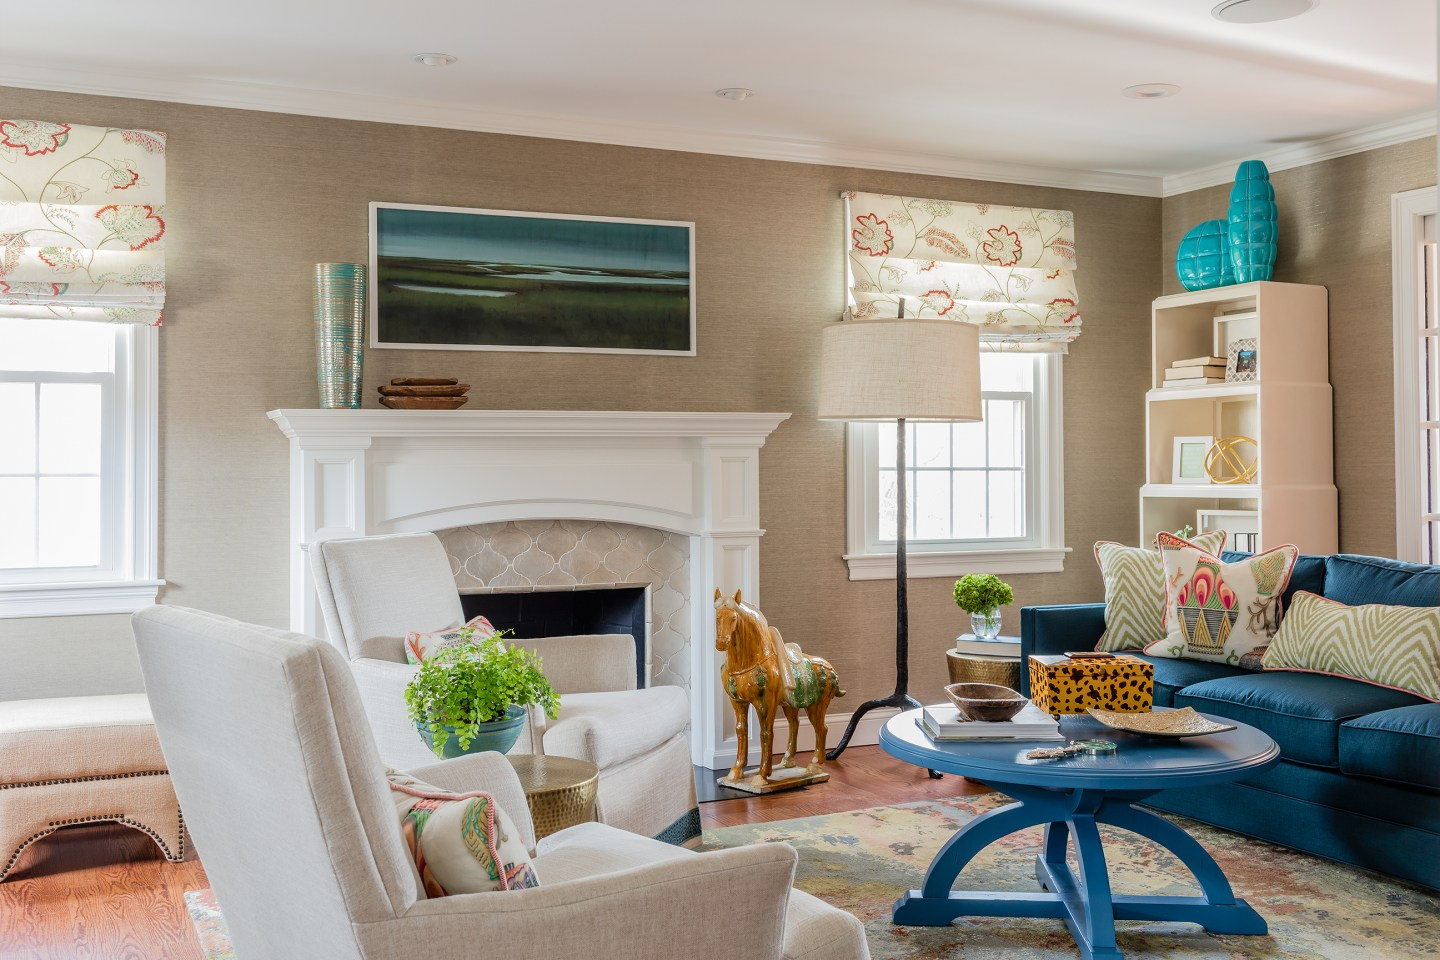 J7A1102 Bayou Meets Boston: How Southern Charm Melds with Northern Design